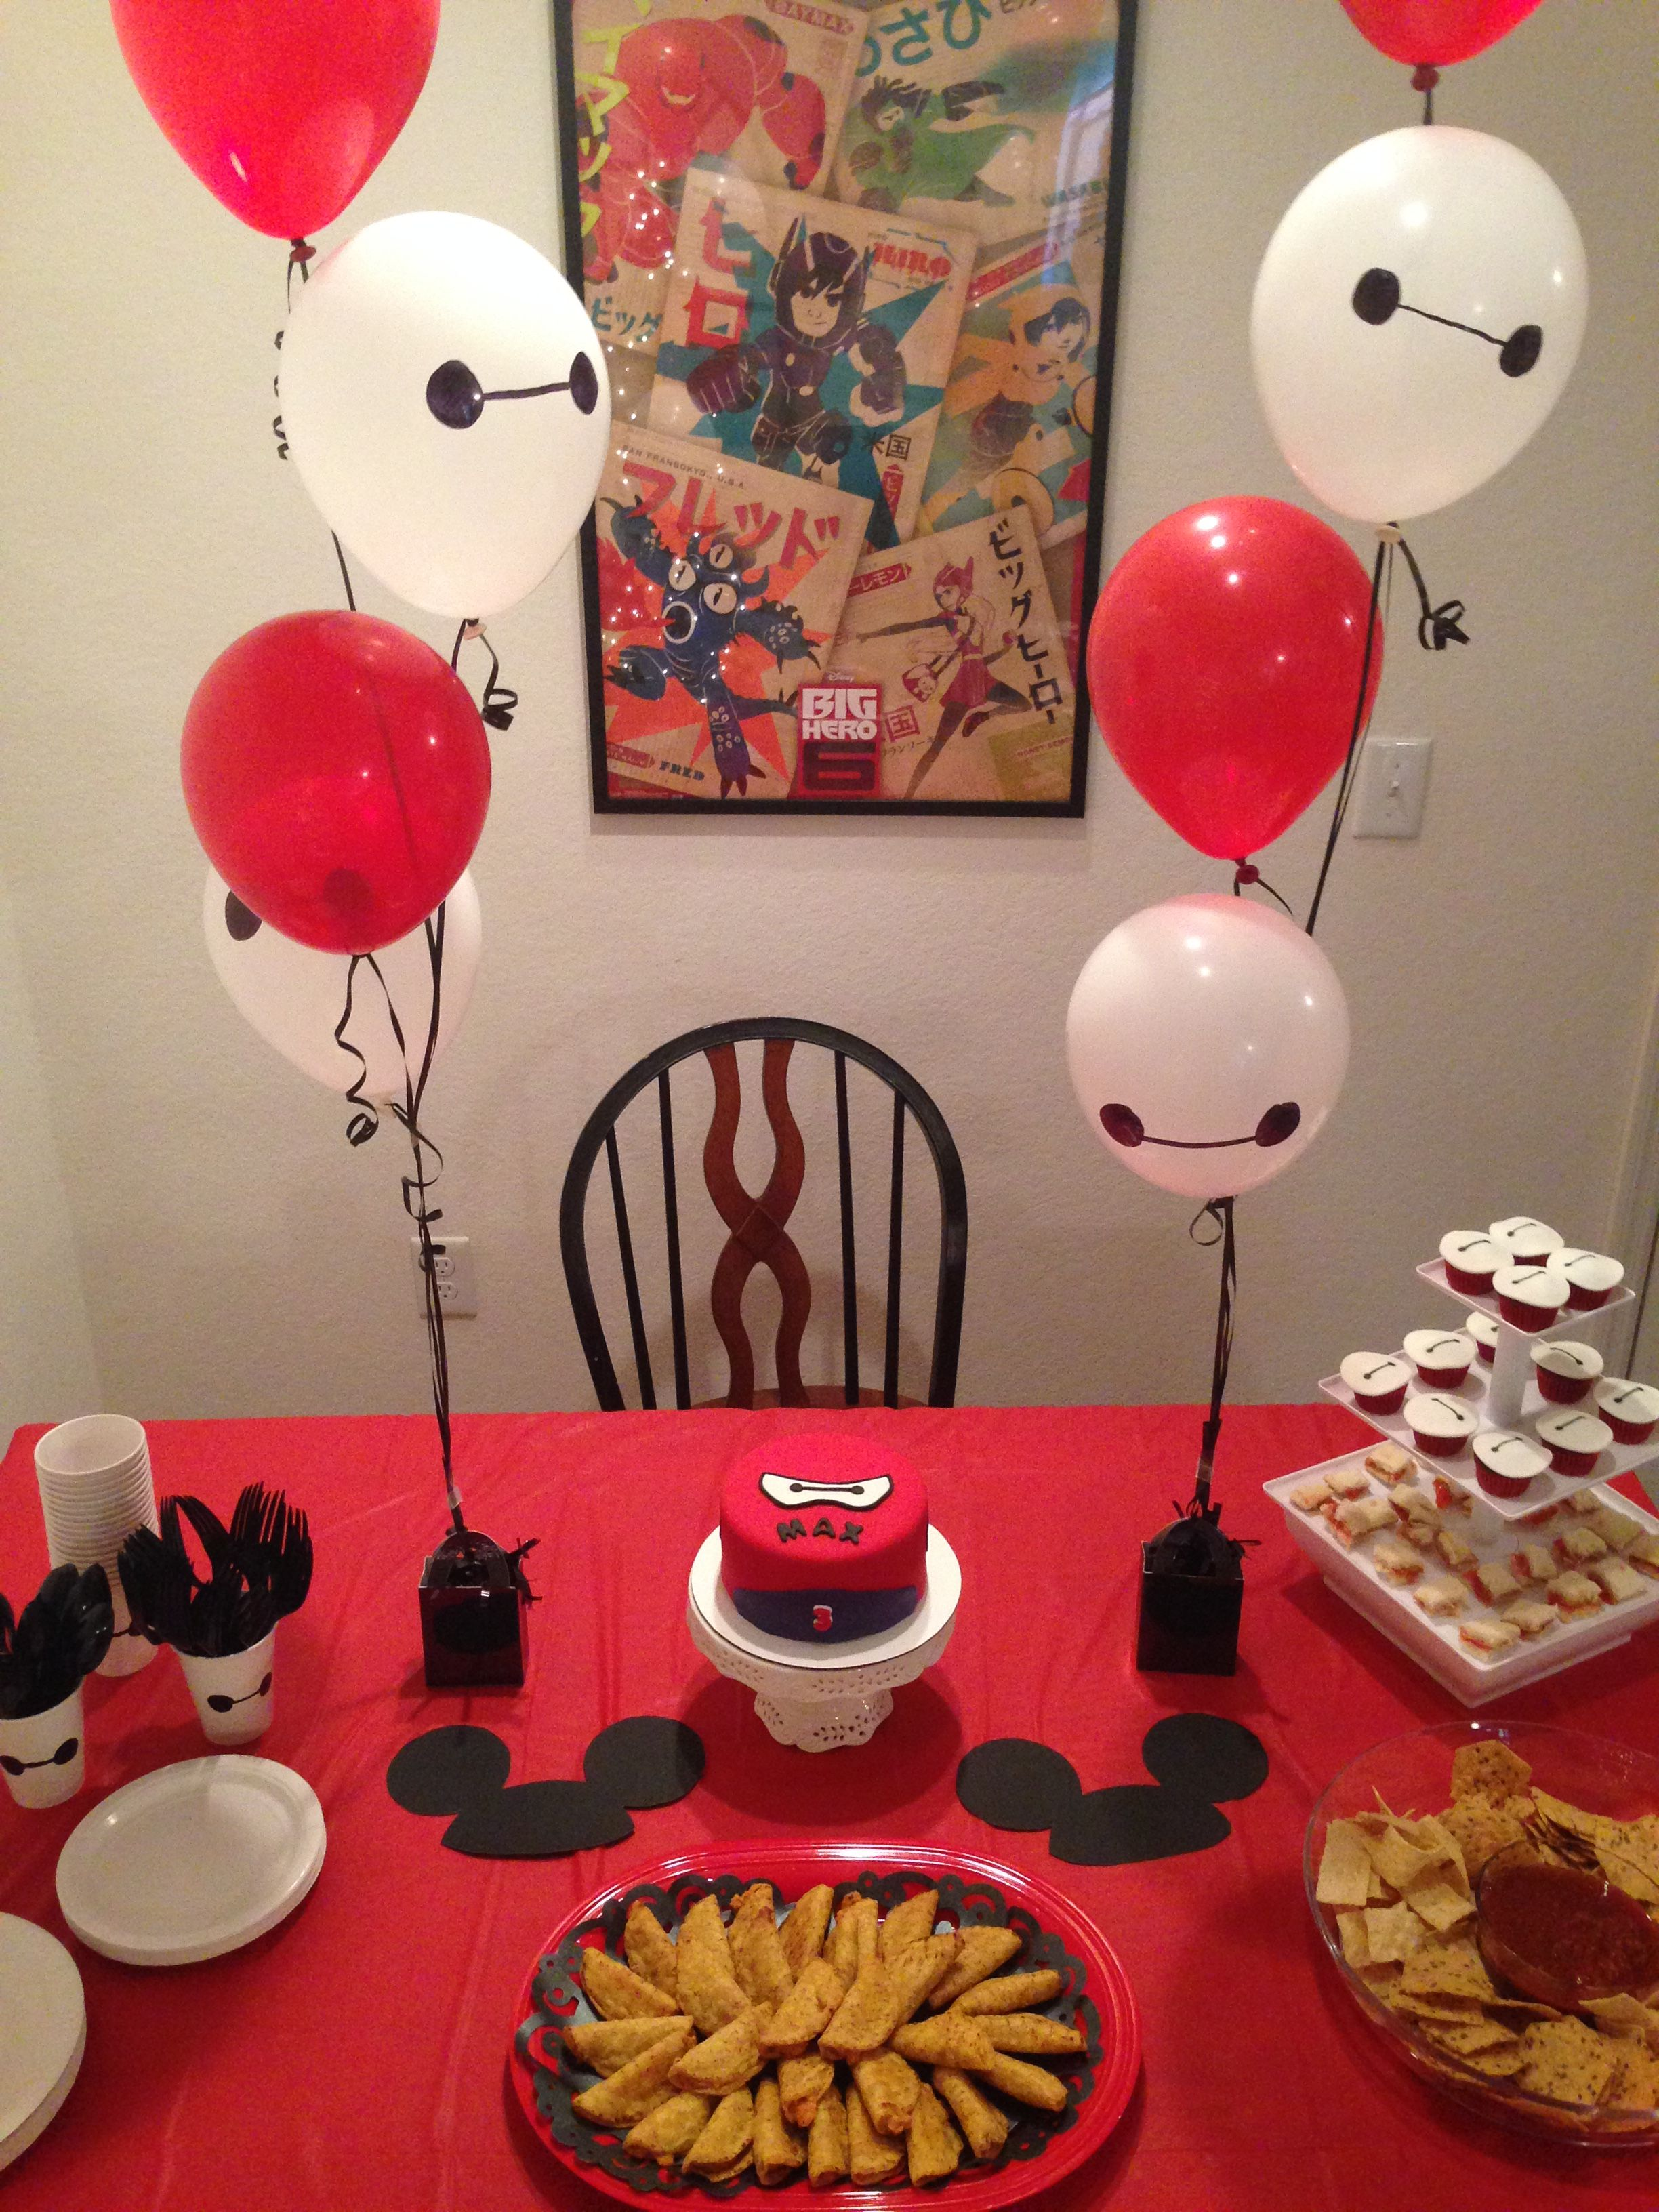 Bowling pin balloons - Find This Pin And More On A Big Hero 6 Party